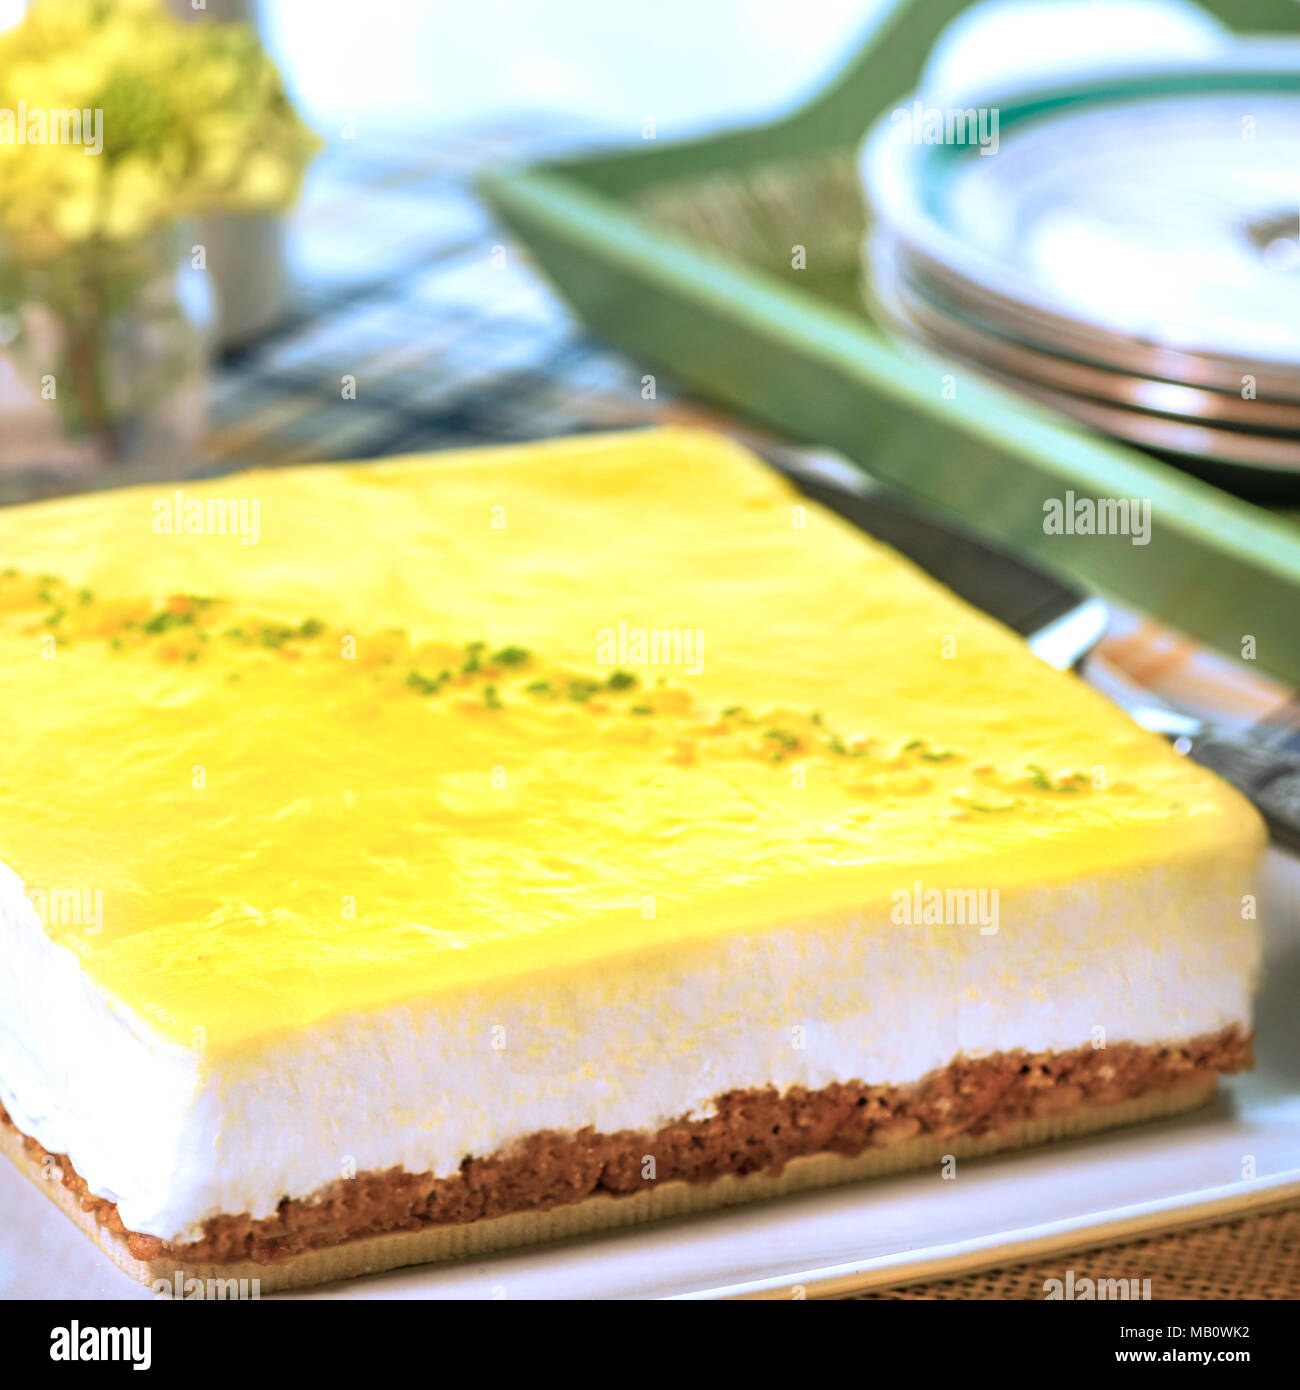 uncut whole lemon cheesecake in a summer setting ready for a picnic in a square format with copy space - Stock Image